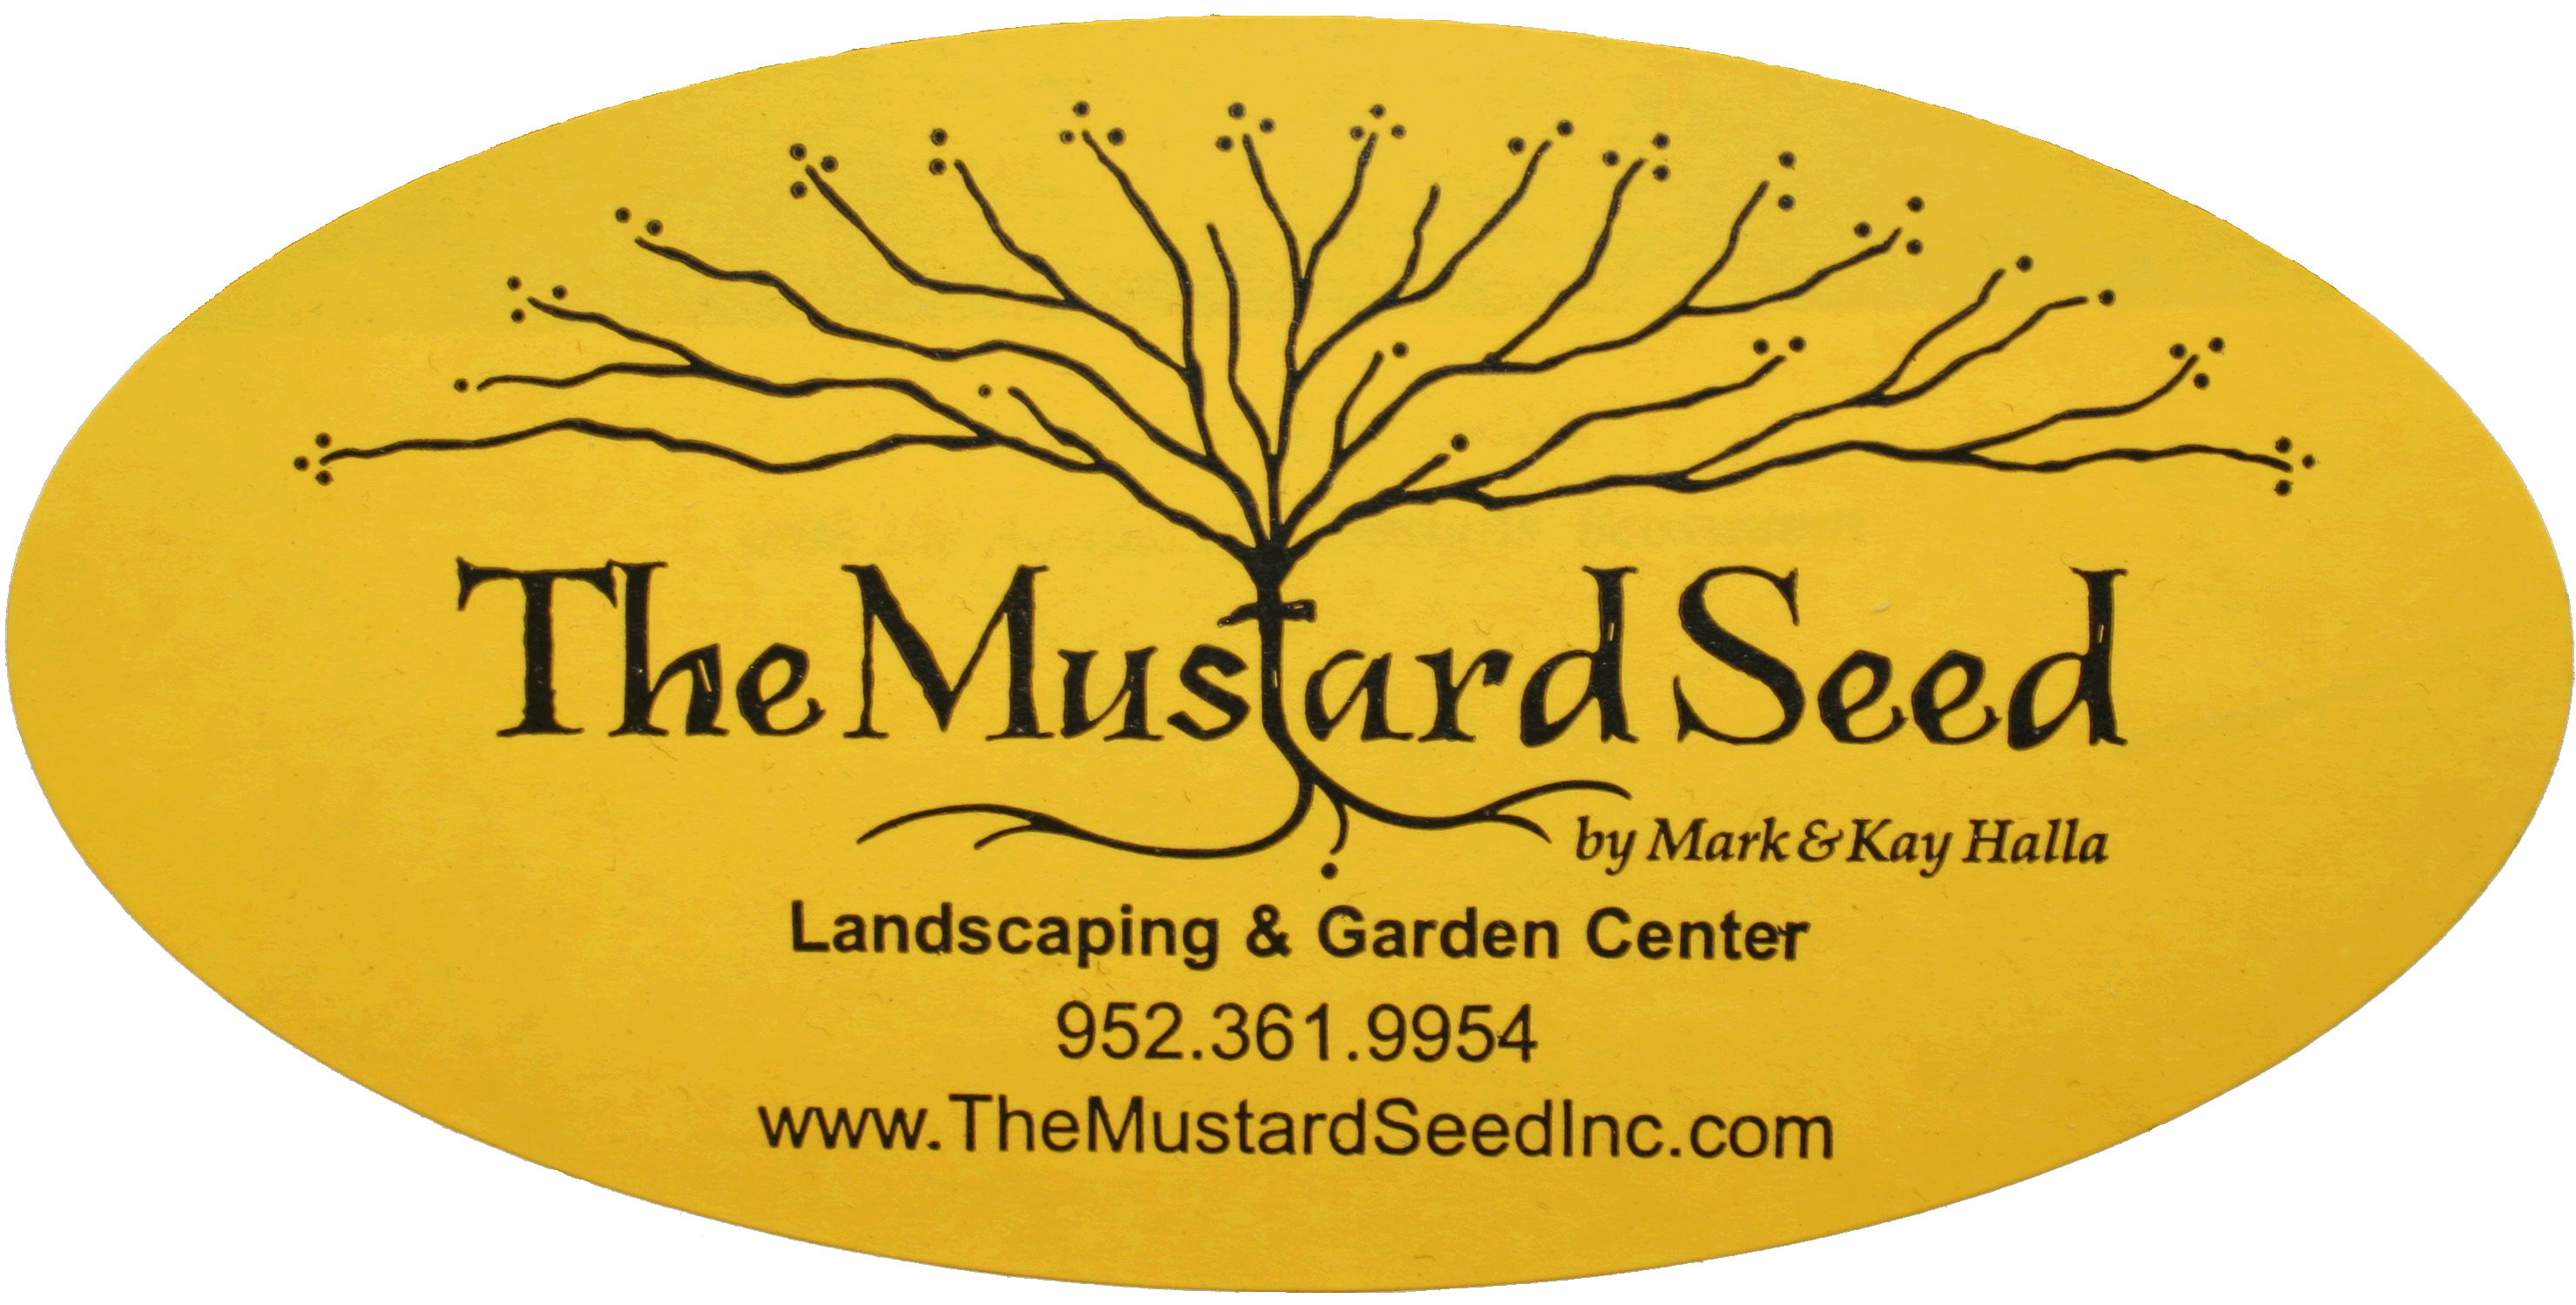 the mustard seed The mustard seed in the parable grows to be a huge tree, representing the tiny beginnings of christianity when just a few disciples began to preach and teach the gospel eventually, the kingdom grew to huge proportions, encompassing the entire world and spreading over centuries.